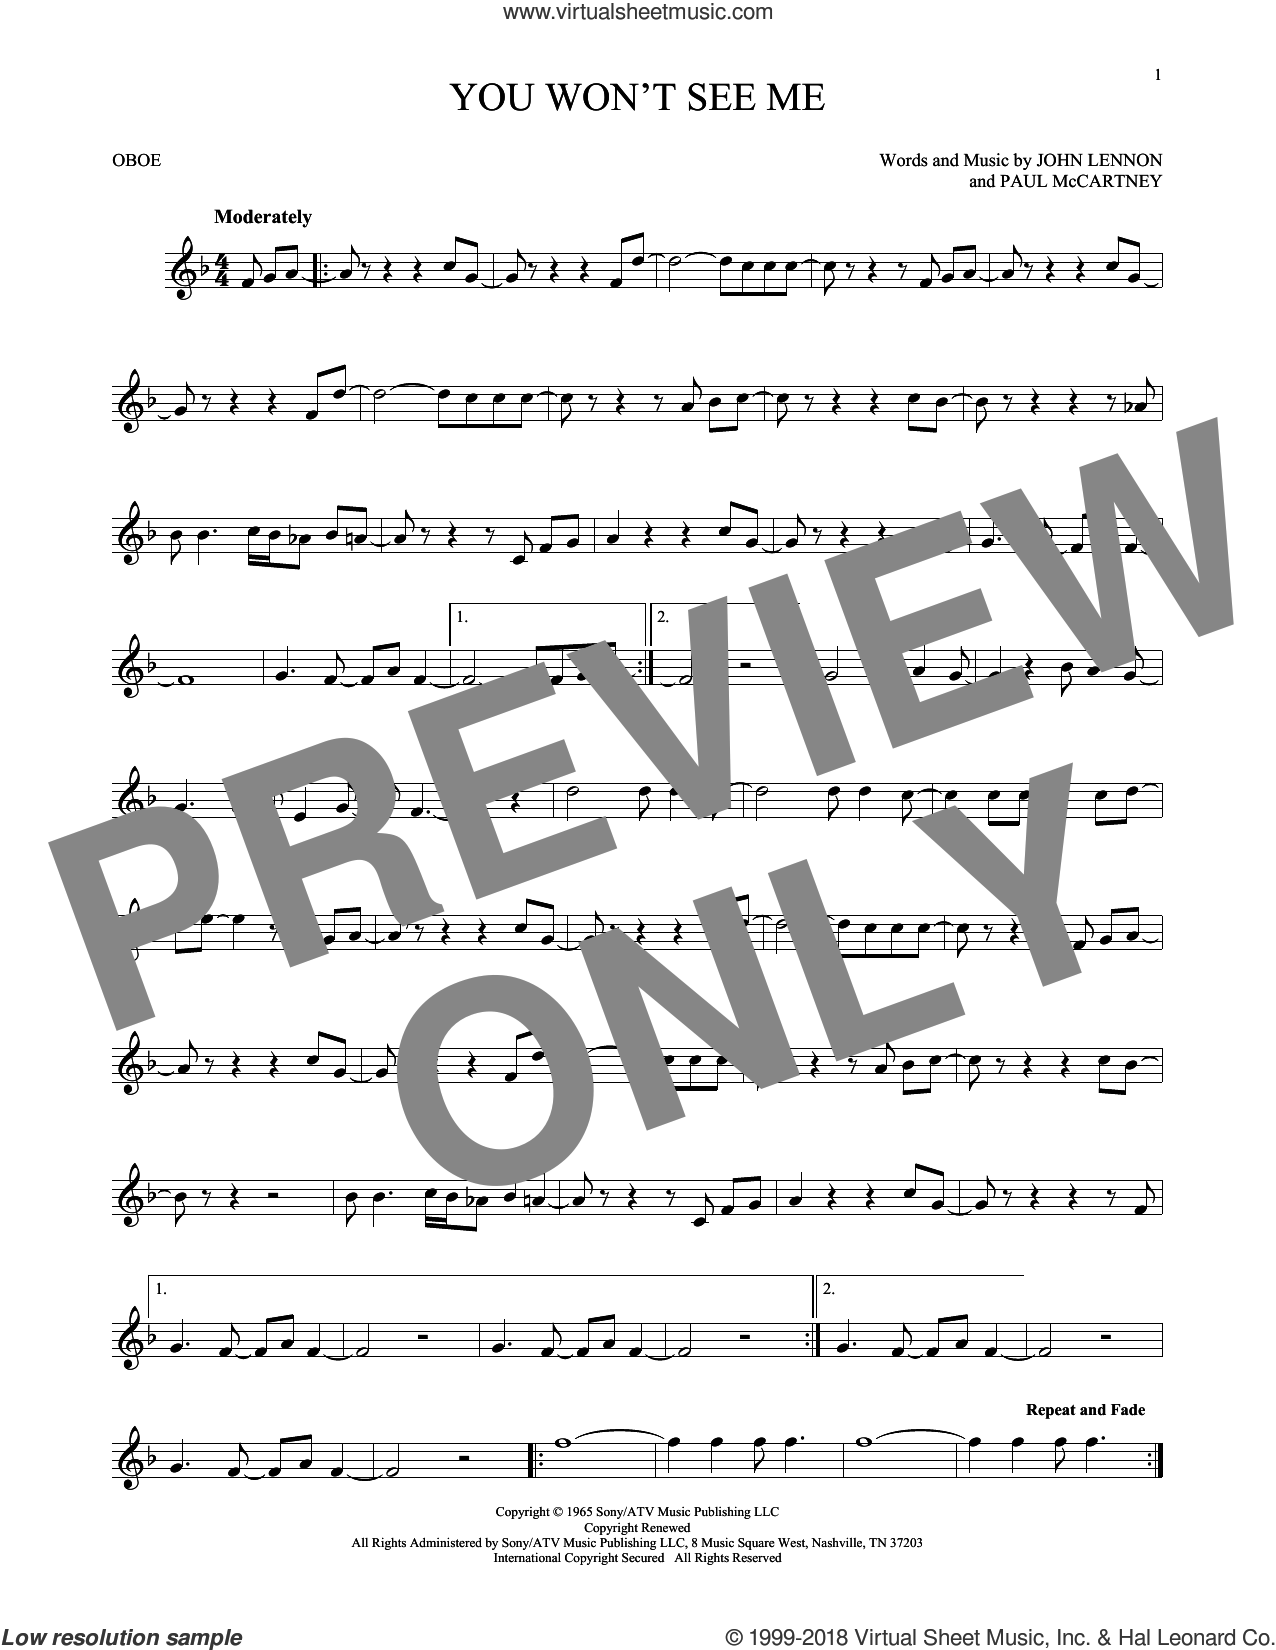 You Won't See Me sheet music for oboe solo by The Beatles, John Lennon and Paul McCartney, intermediate oboe. Score Image Preview.